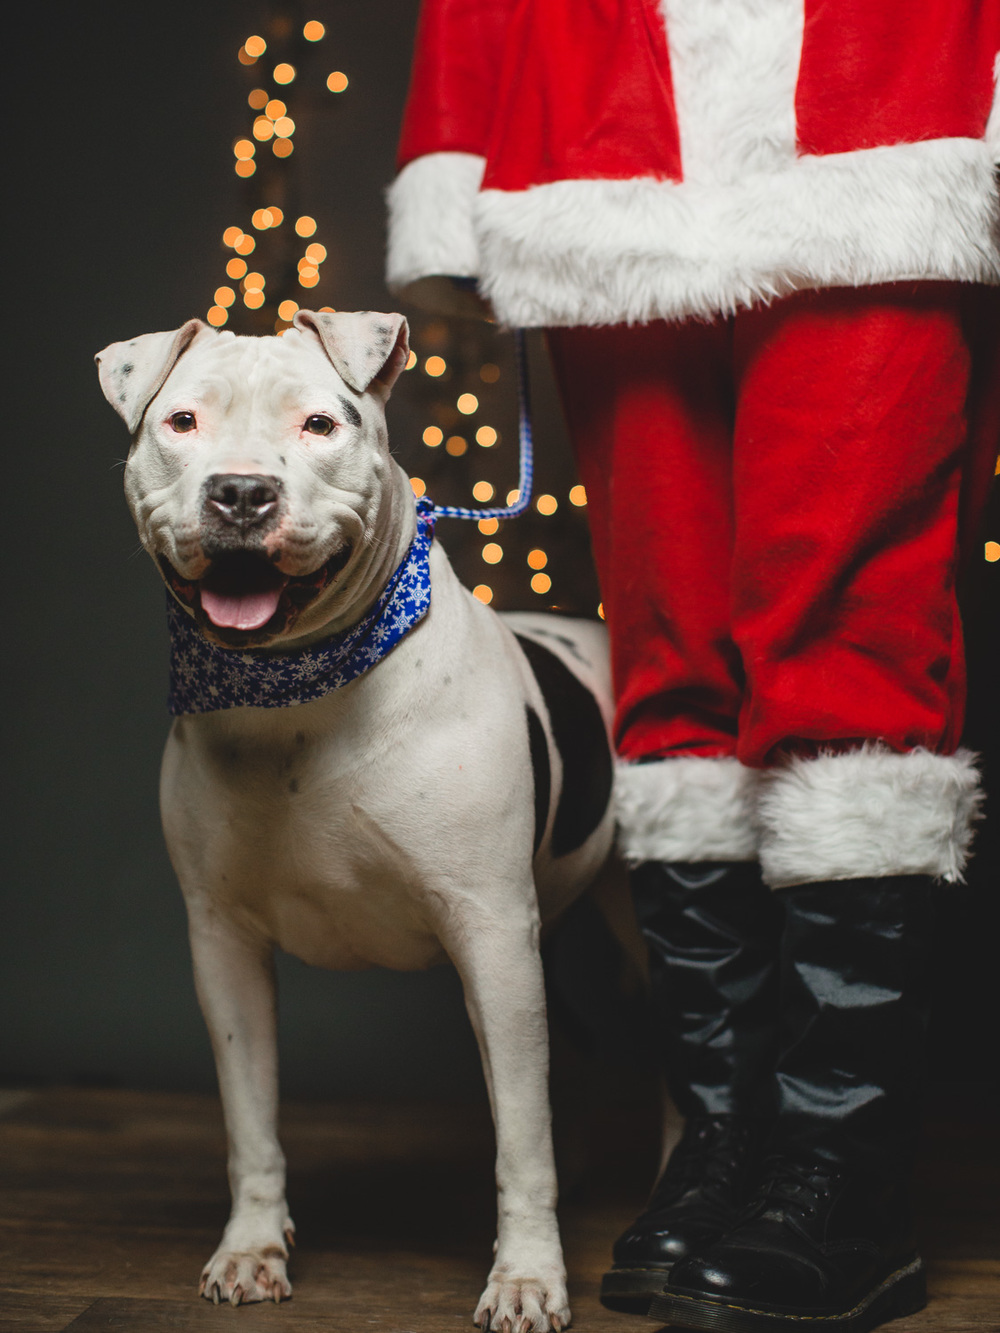 Pit Bull Mix Needs A Foster To Get Out Of Chicago Shelter